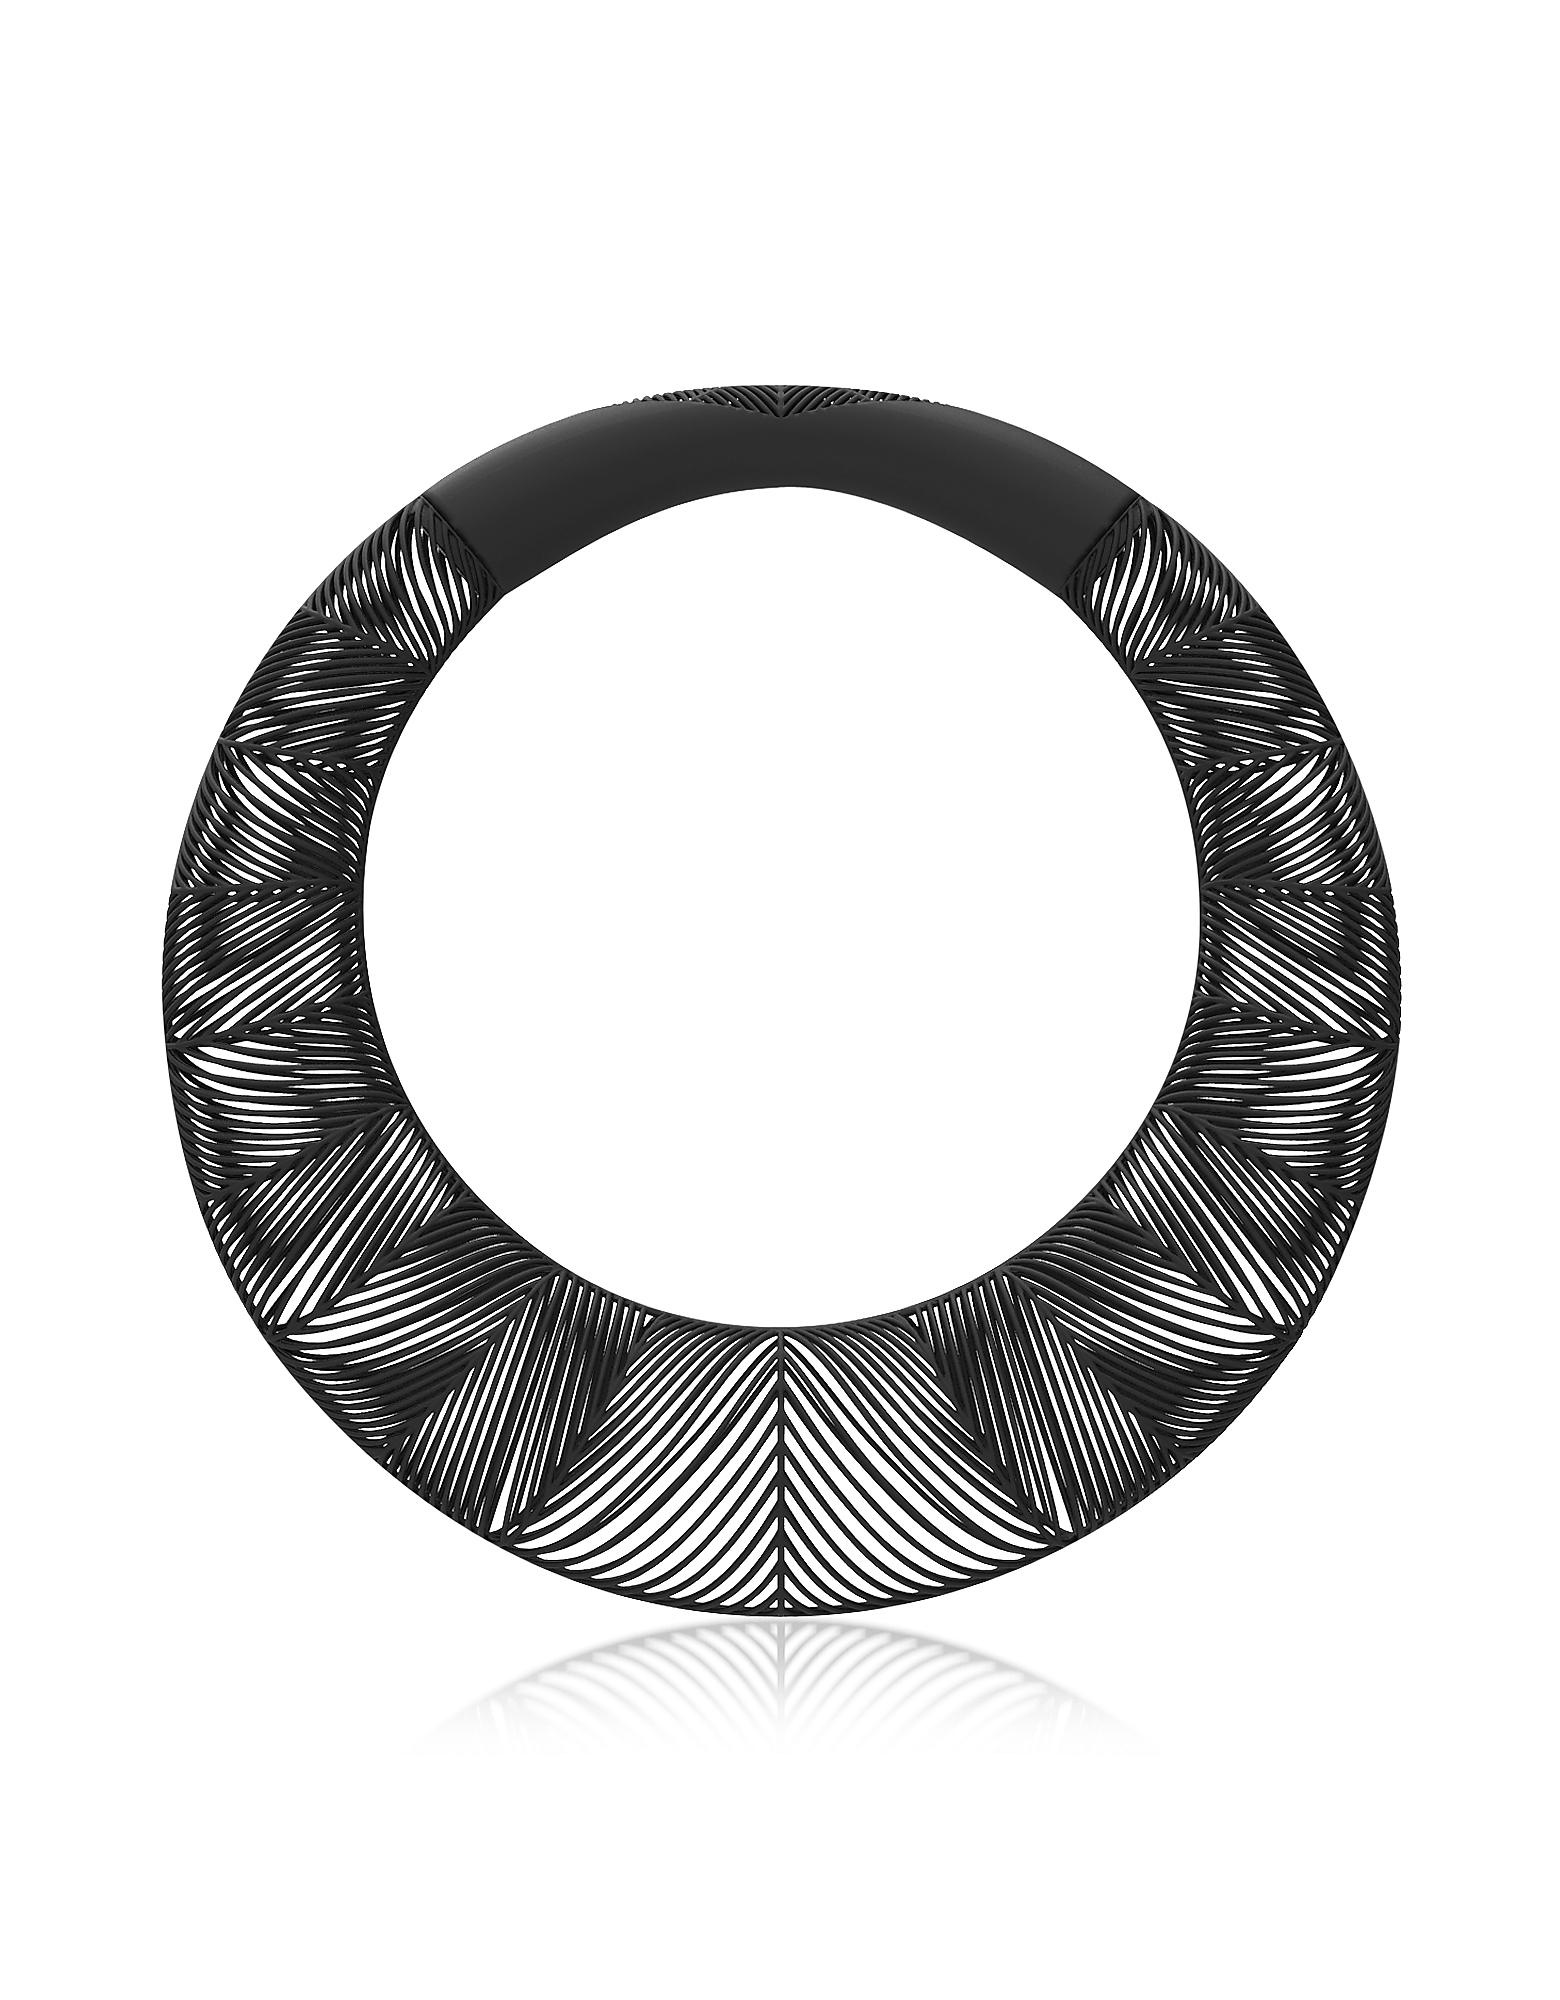 Vojd Studios Designer Necklaces, Umbala Black Chevron Giant Torque